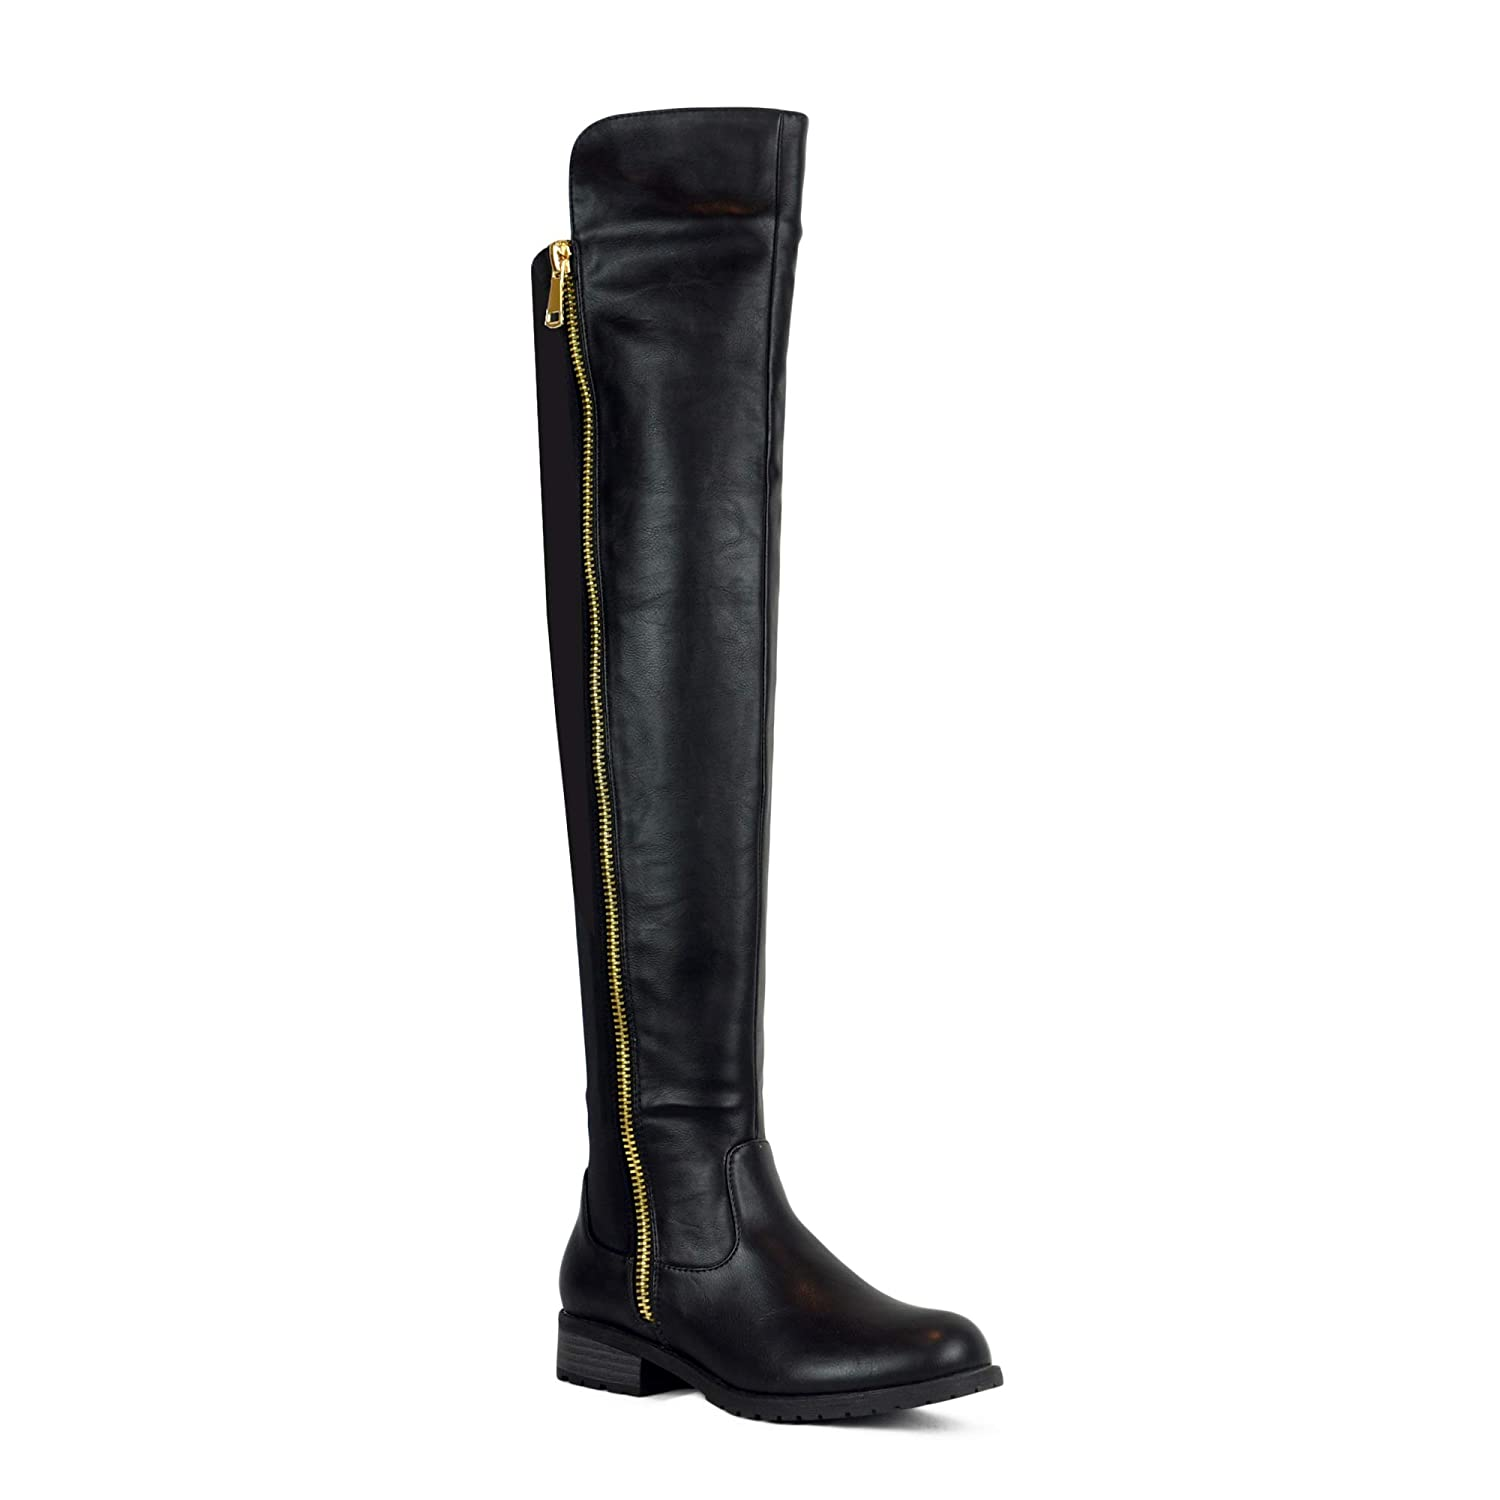 19351aeb8af1 Amazon.com  WEST COAST Low Heel Over The Knee Boots Women s Stretch Back  Side Zipper Long Boots  Shoes